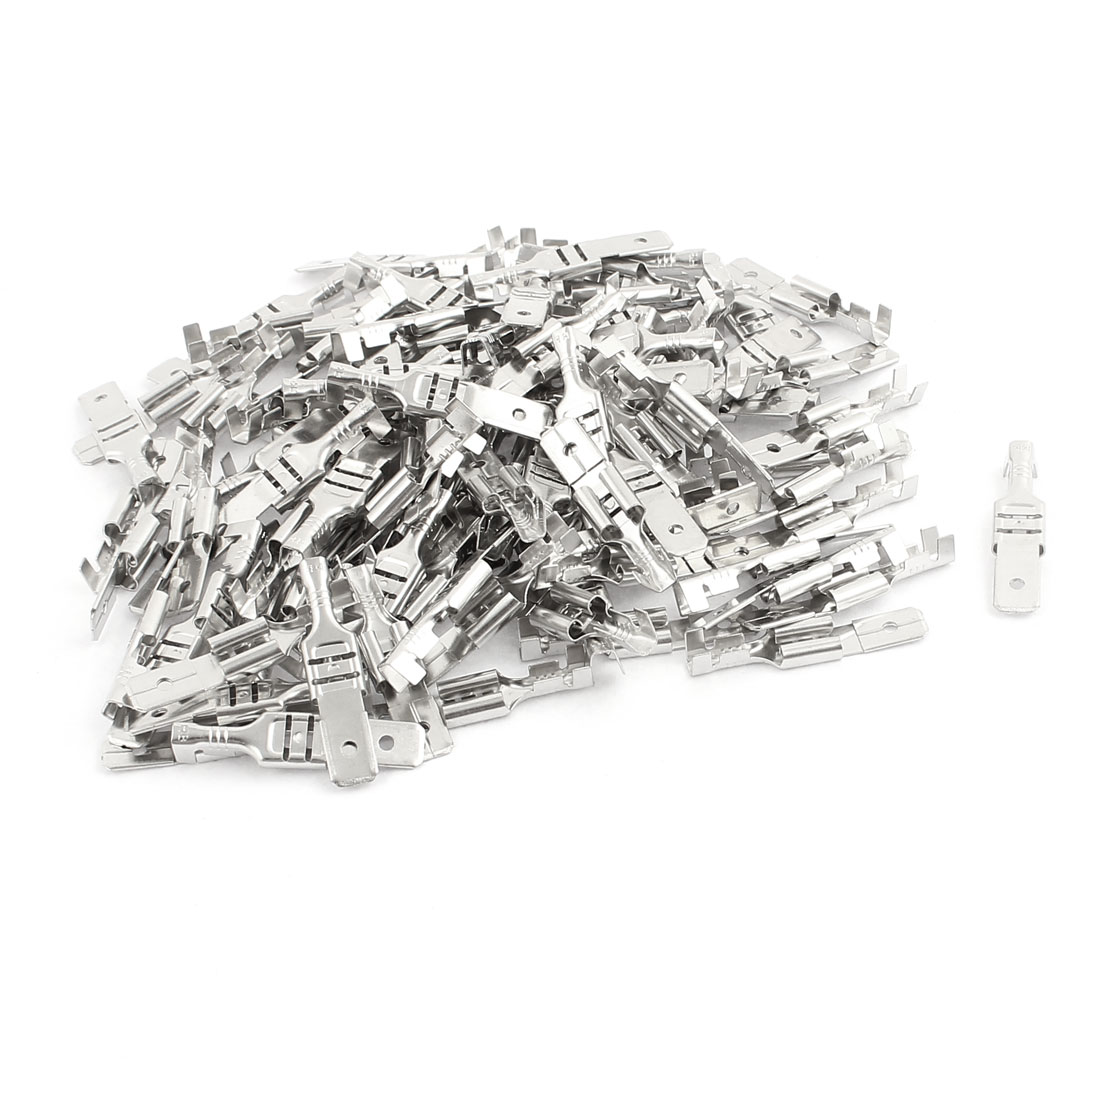 100 Pcs Silver Tone 6.3mm Width Male Crimp Terminal Connectors w PVC Jacket